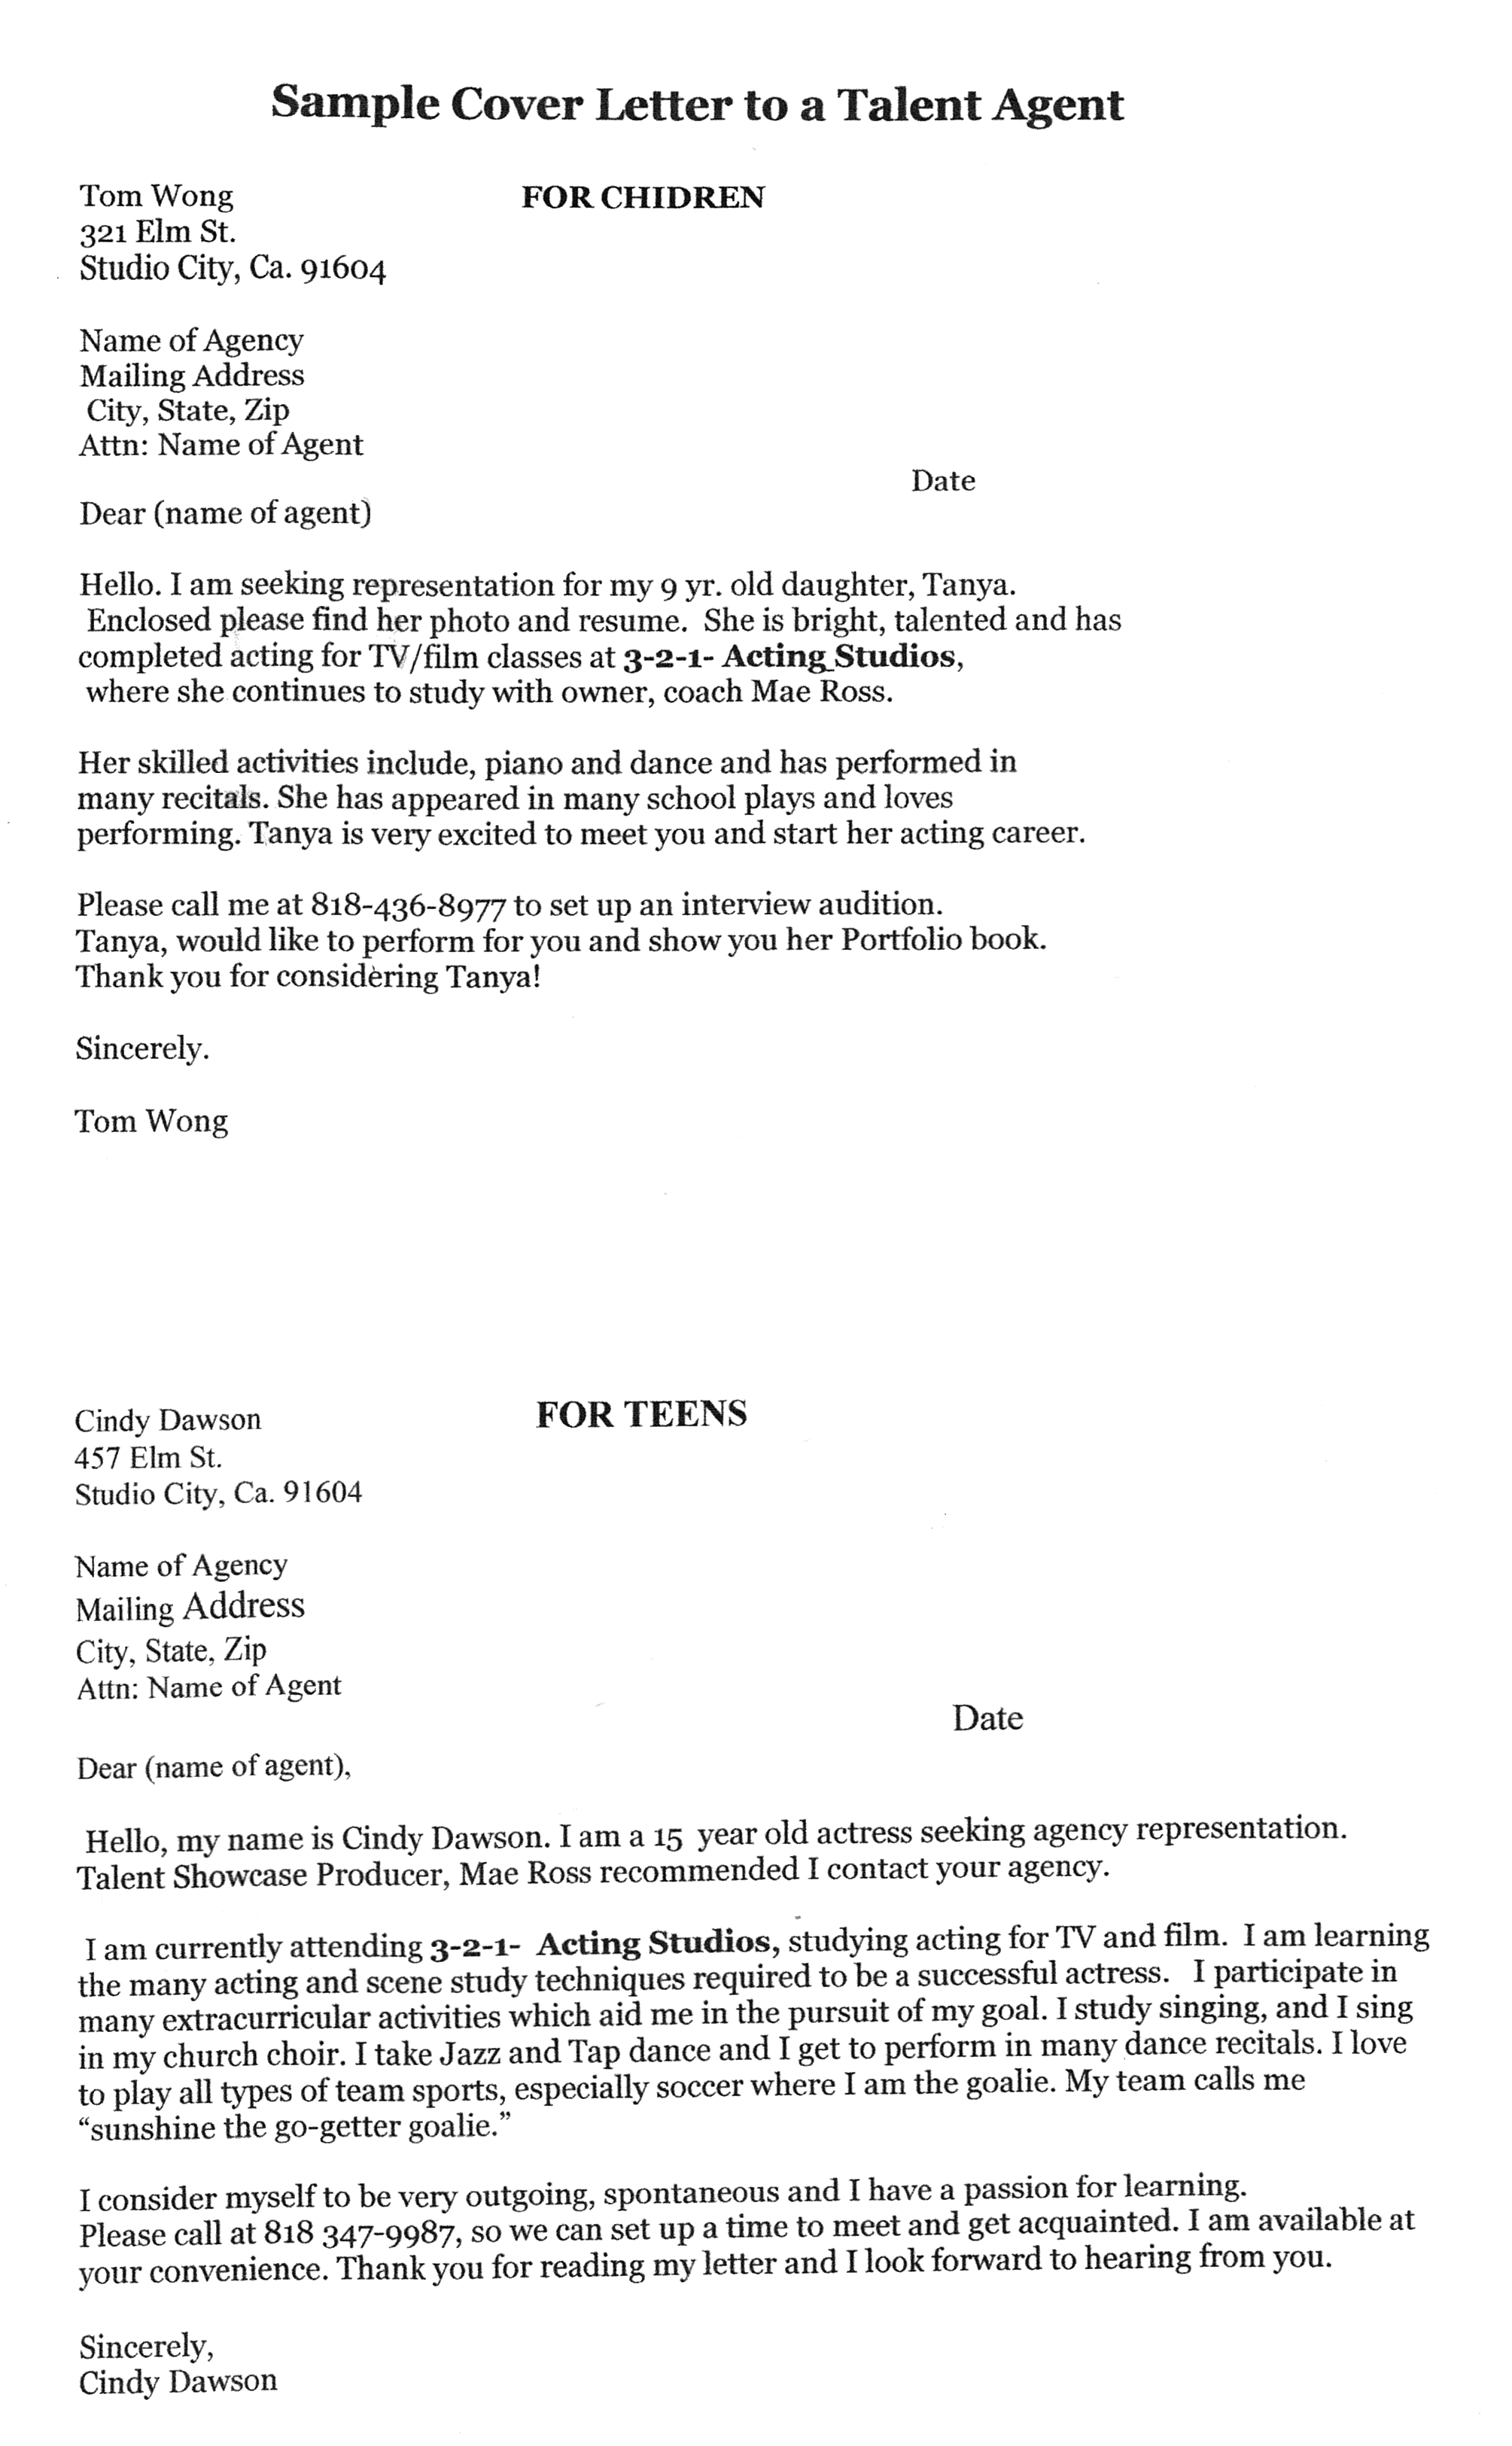 Creative Cover Letter Copywriter Pinterest  How To Write A Professional Cover Letter